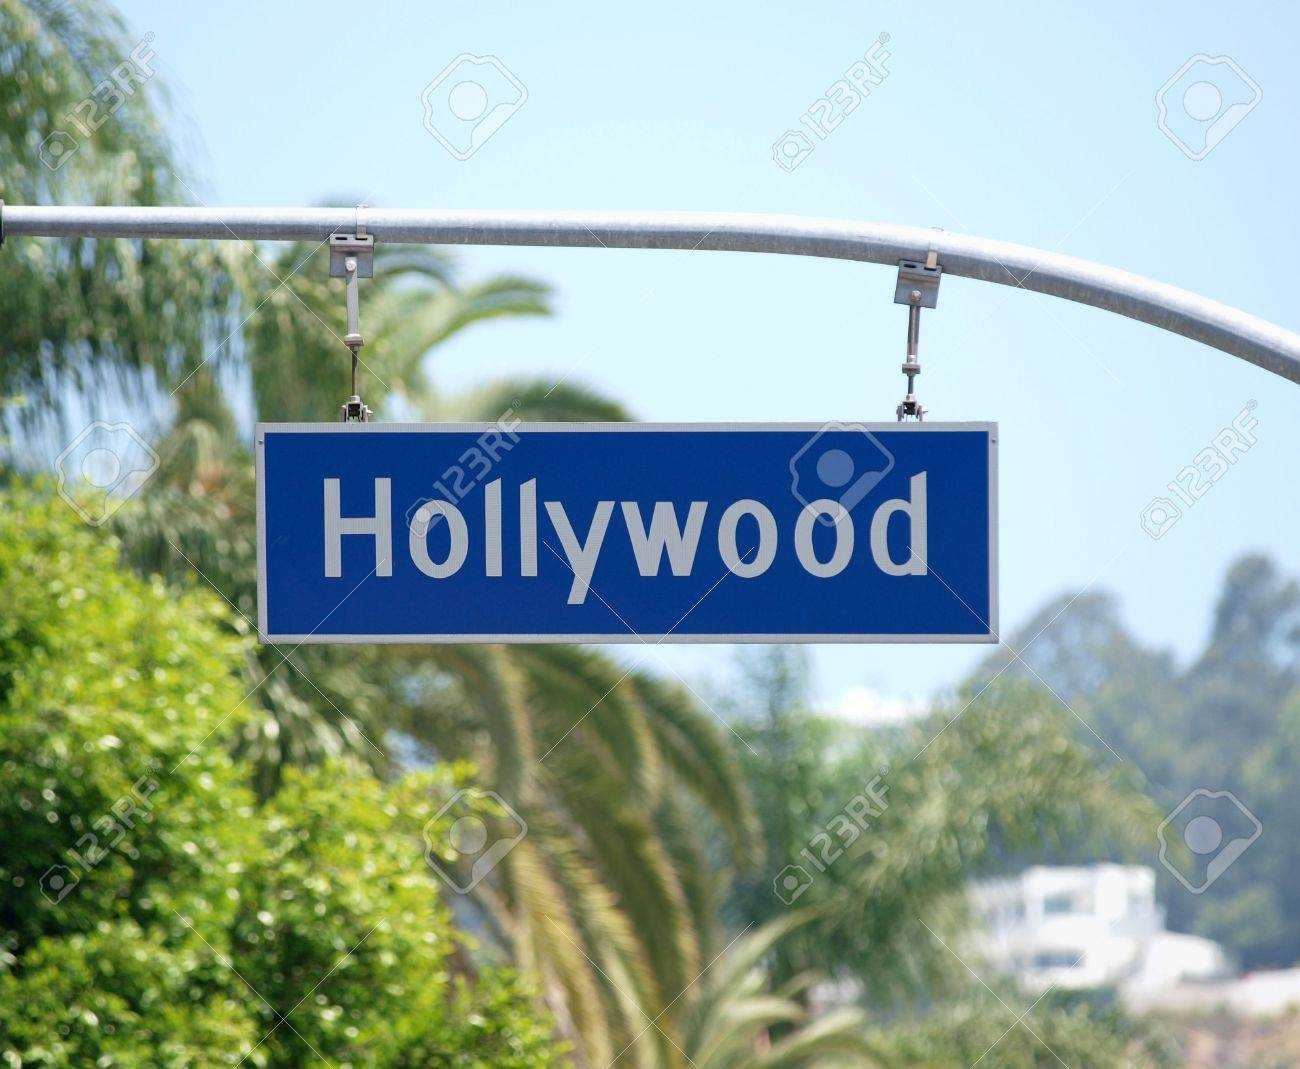 Hollywood Blvd sign with palm tree backdrop. Stock Photo - 4890954